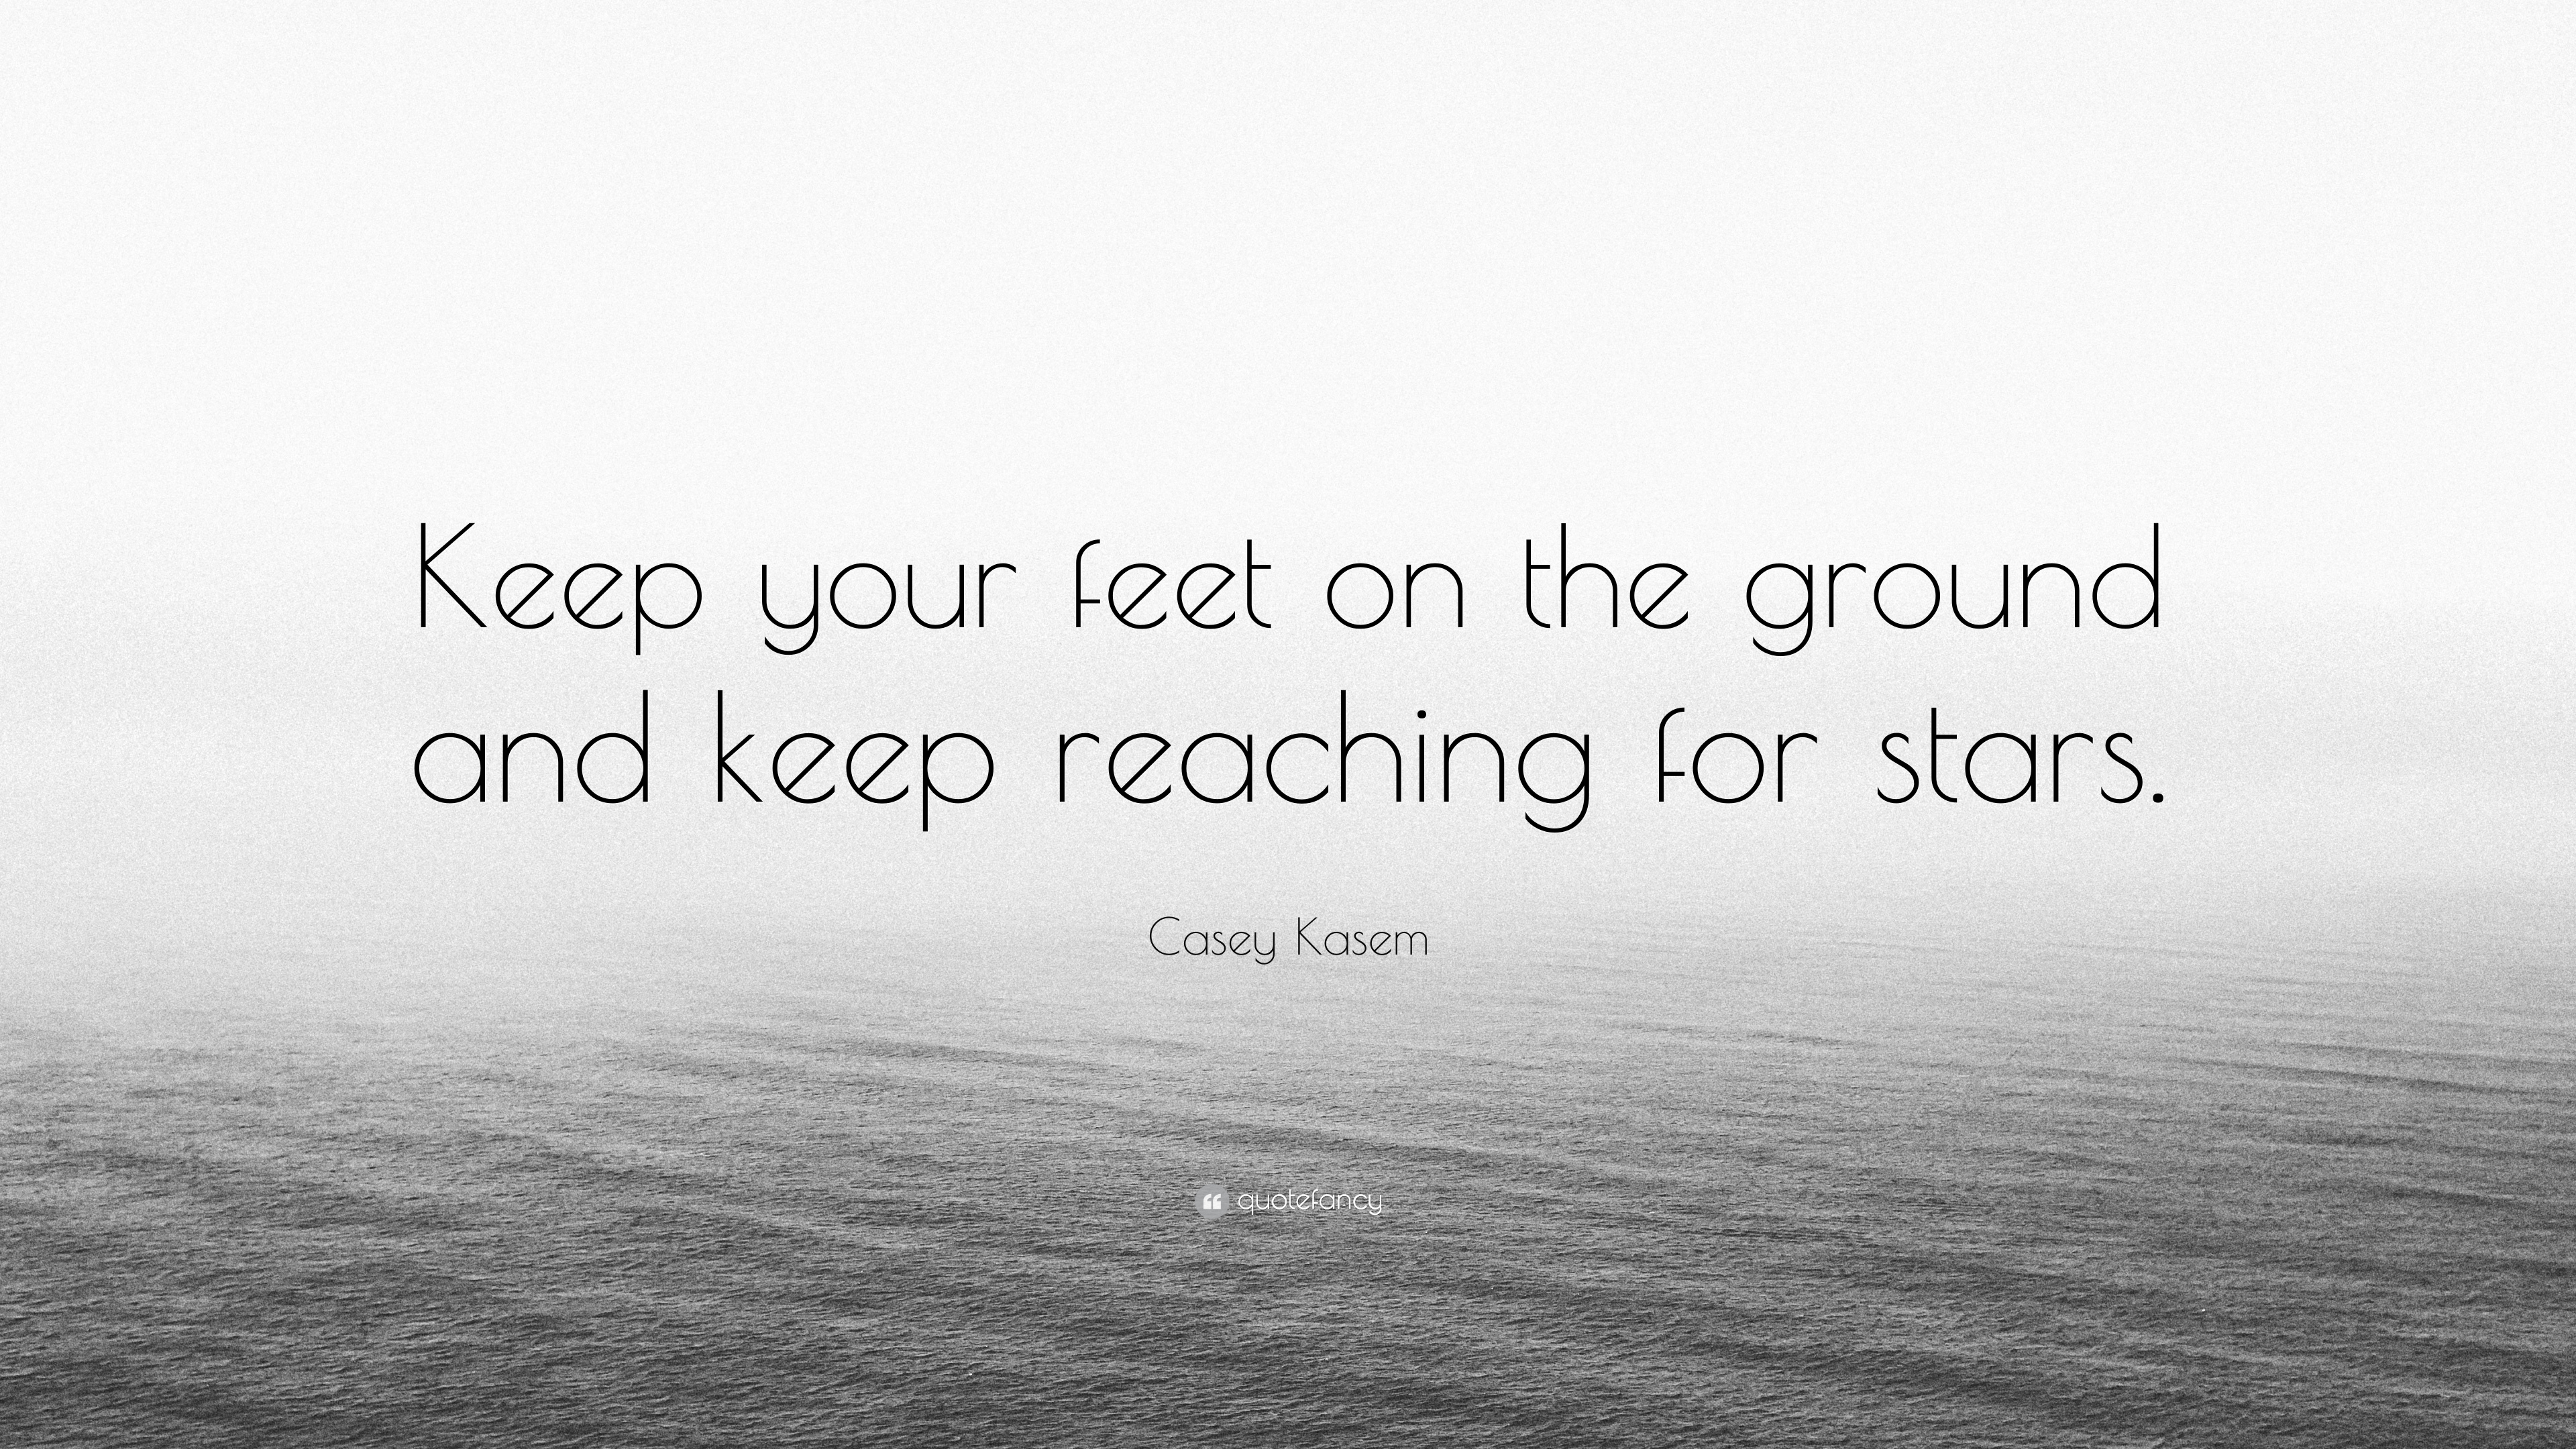 Casey Kasem Quote: Keep your feet on the ground and keep